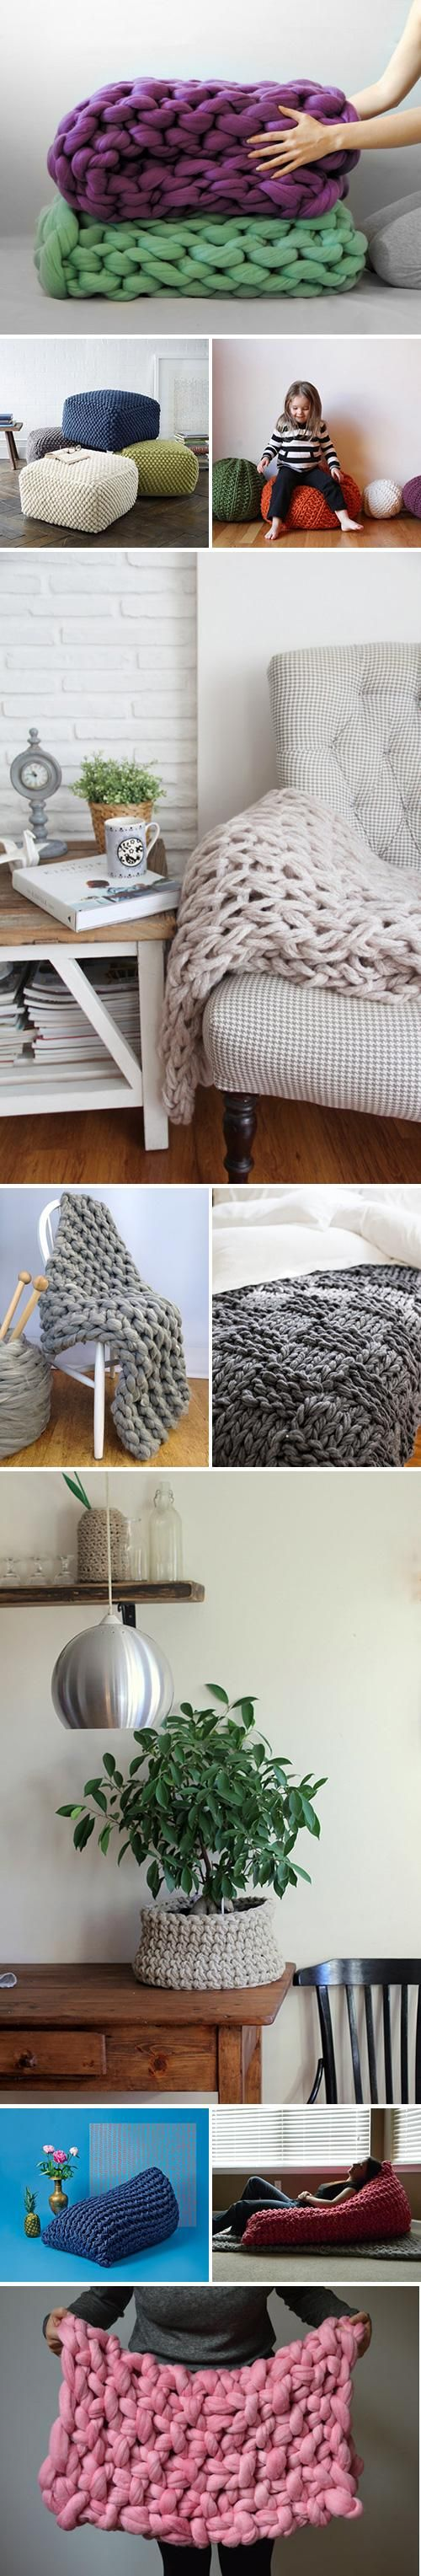 Cozy up your home for the coldest months with fabulously fluffy knit and crochet accessories — to buy or #DIY. Click through to see all our picks and projects. #etsyhome